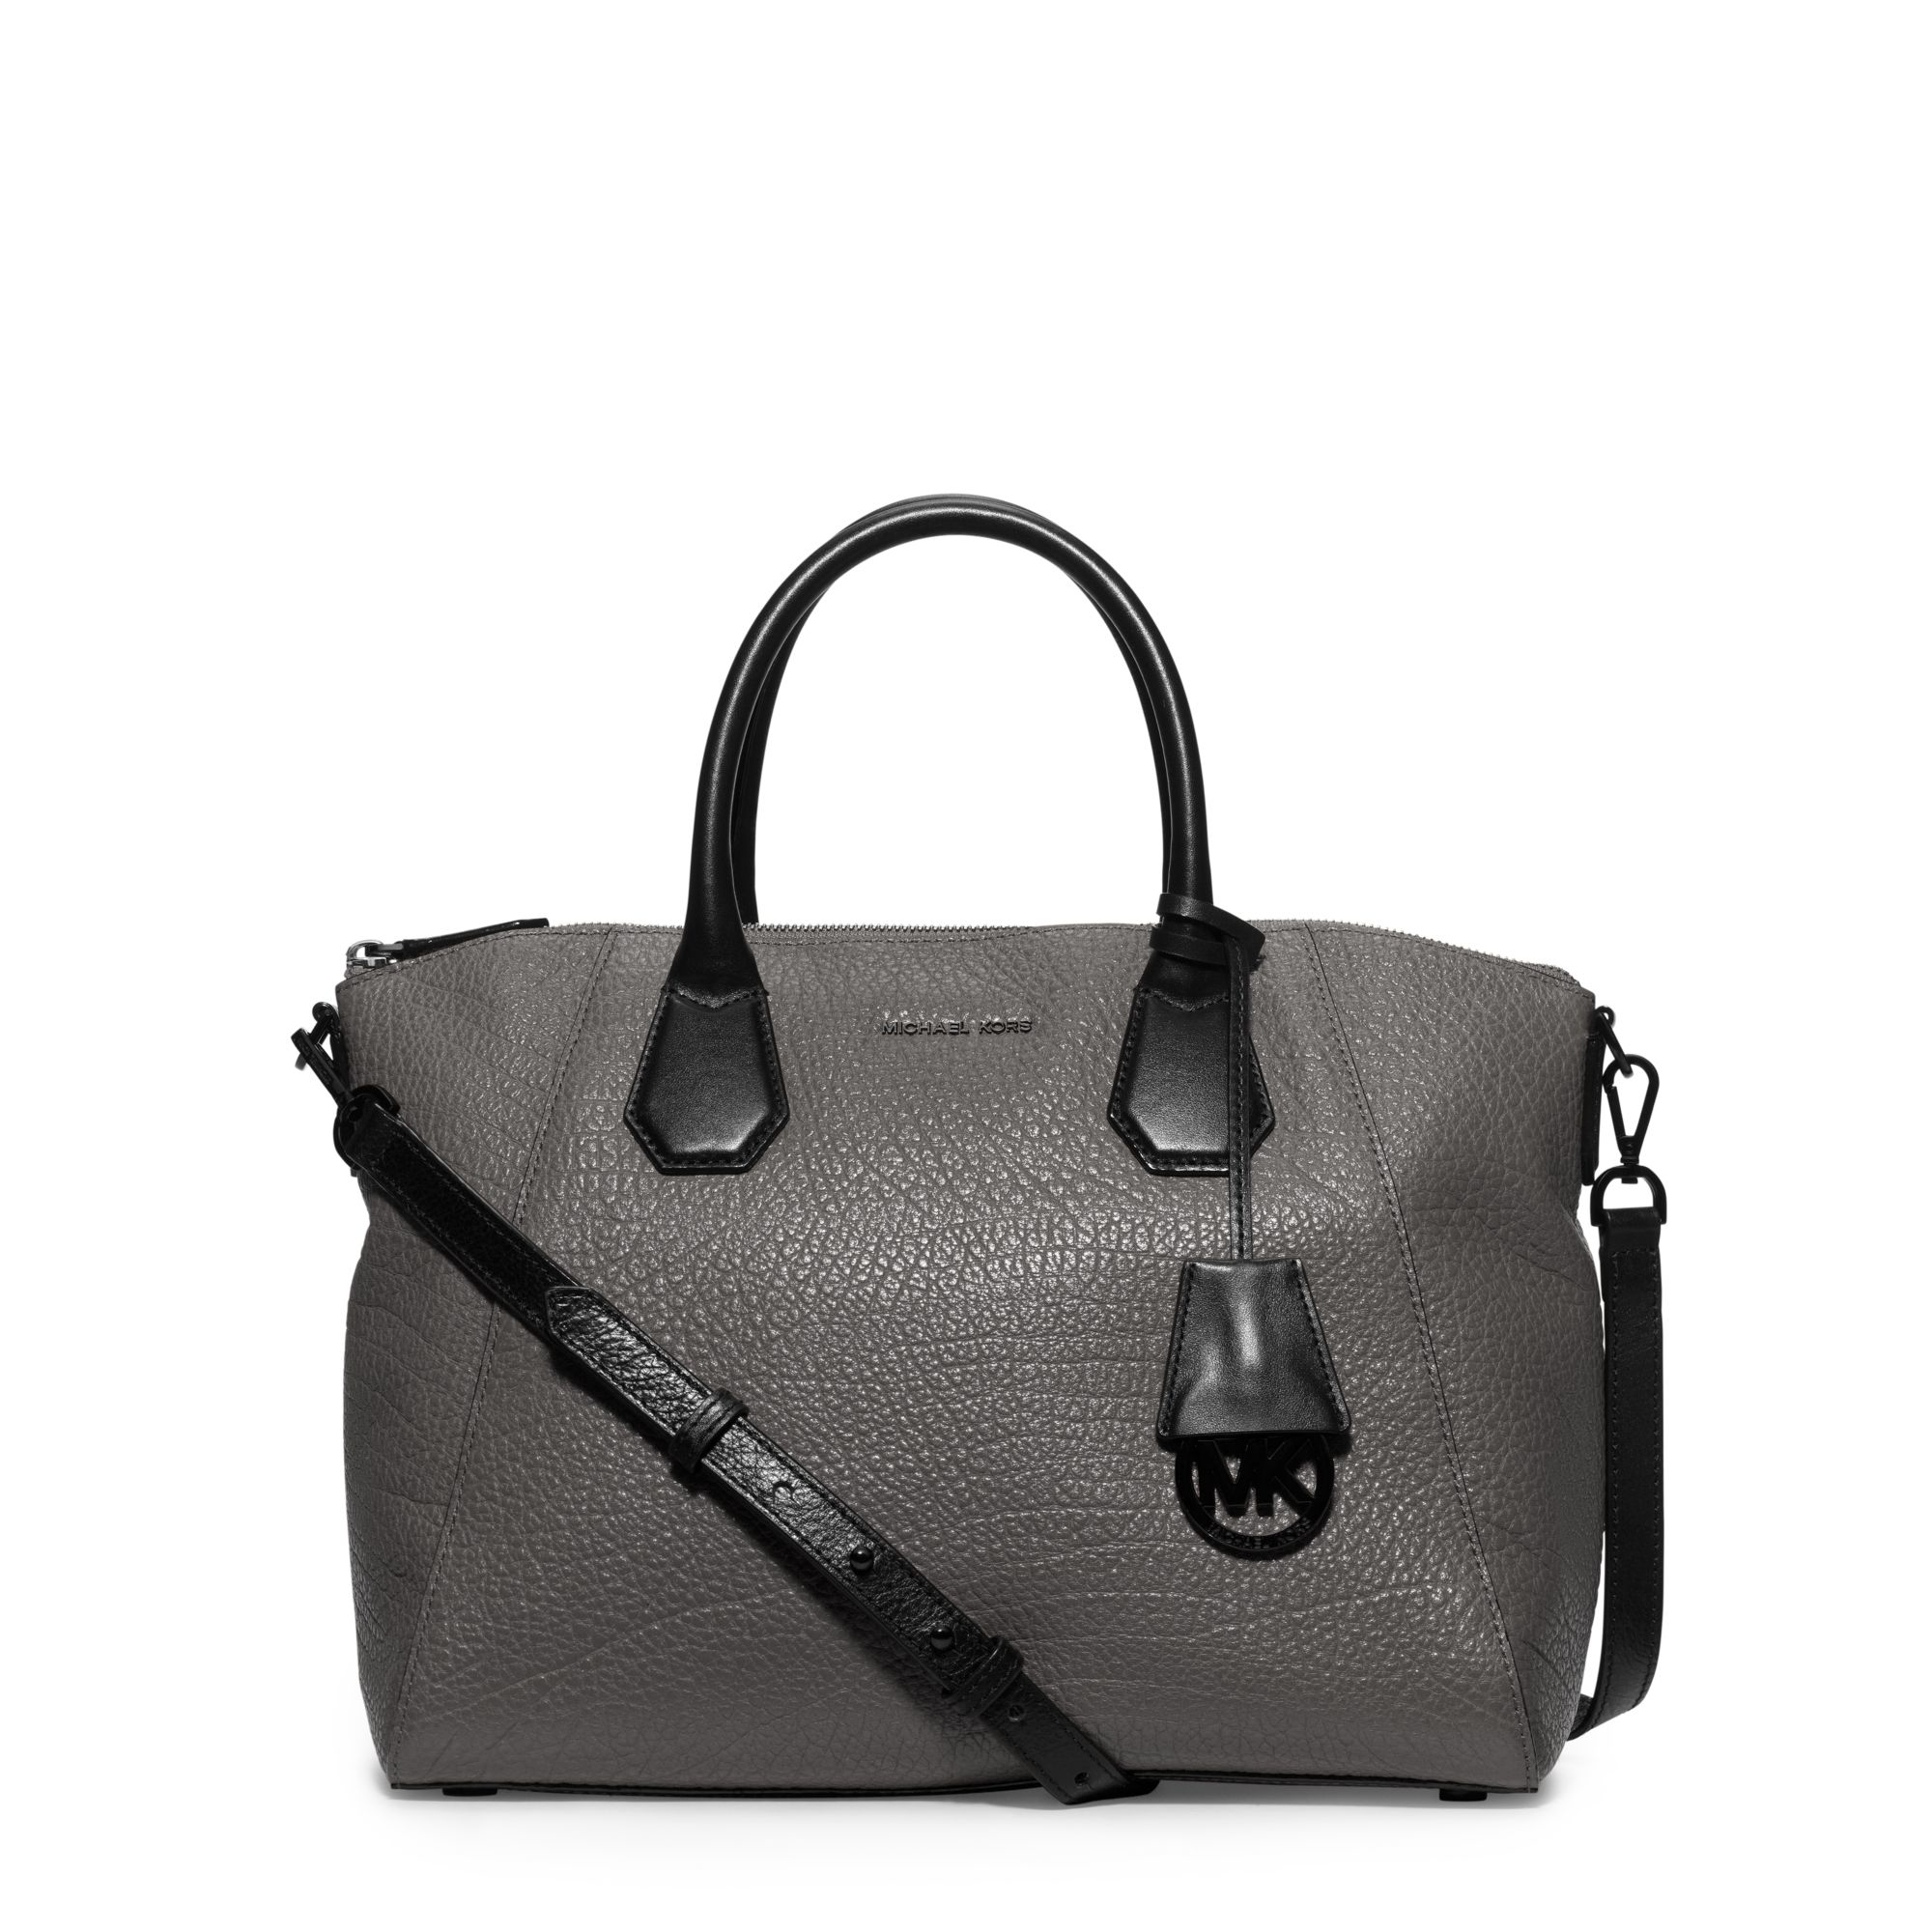 6c83388a04d7 Lyst - Michael Kors Campbell Large Leather Satchel in Gray